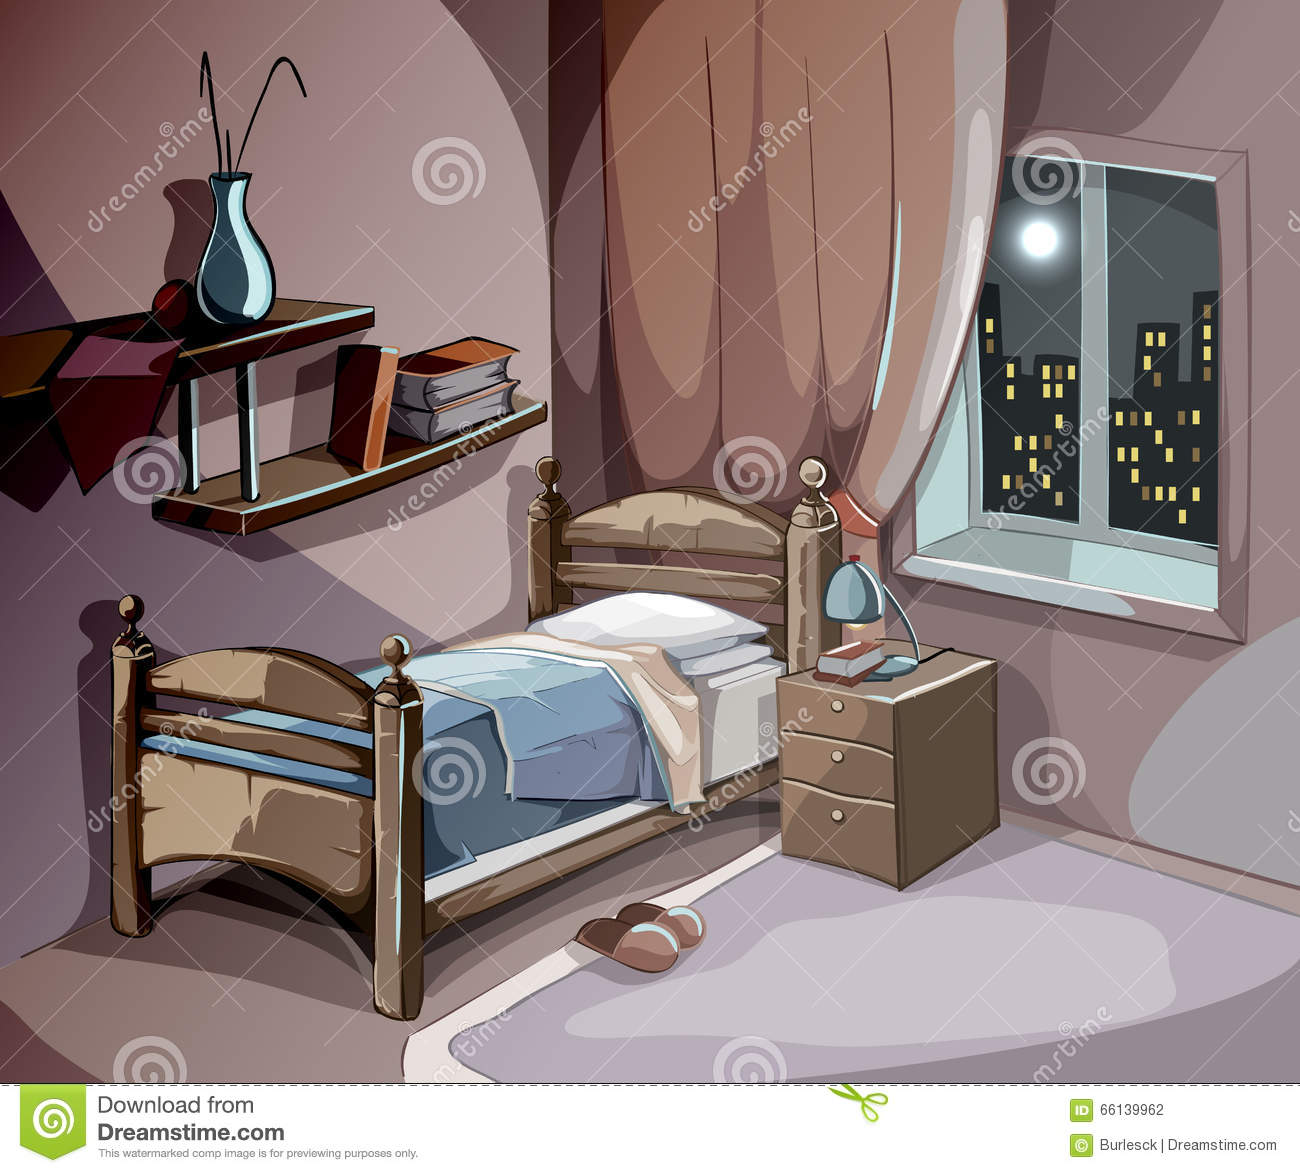 Bedroom Interior At Night In Cartoon Style. Vector